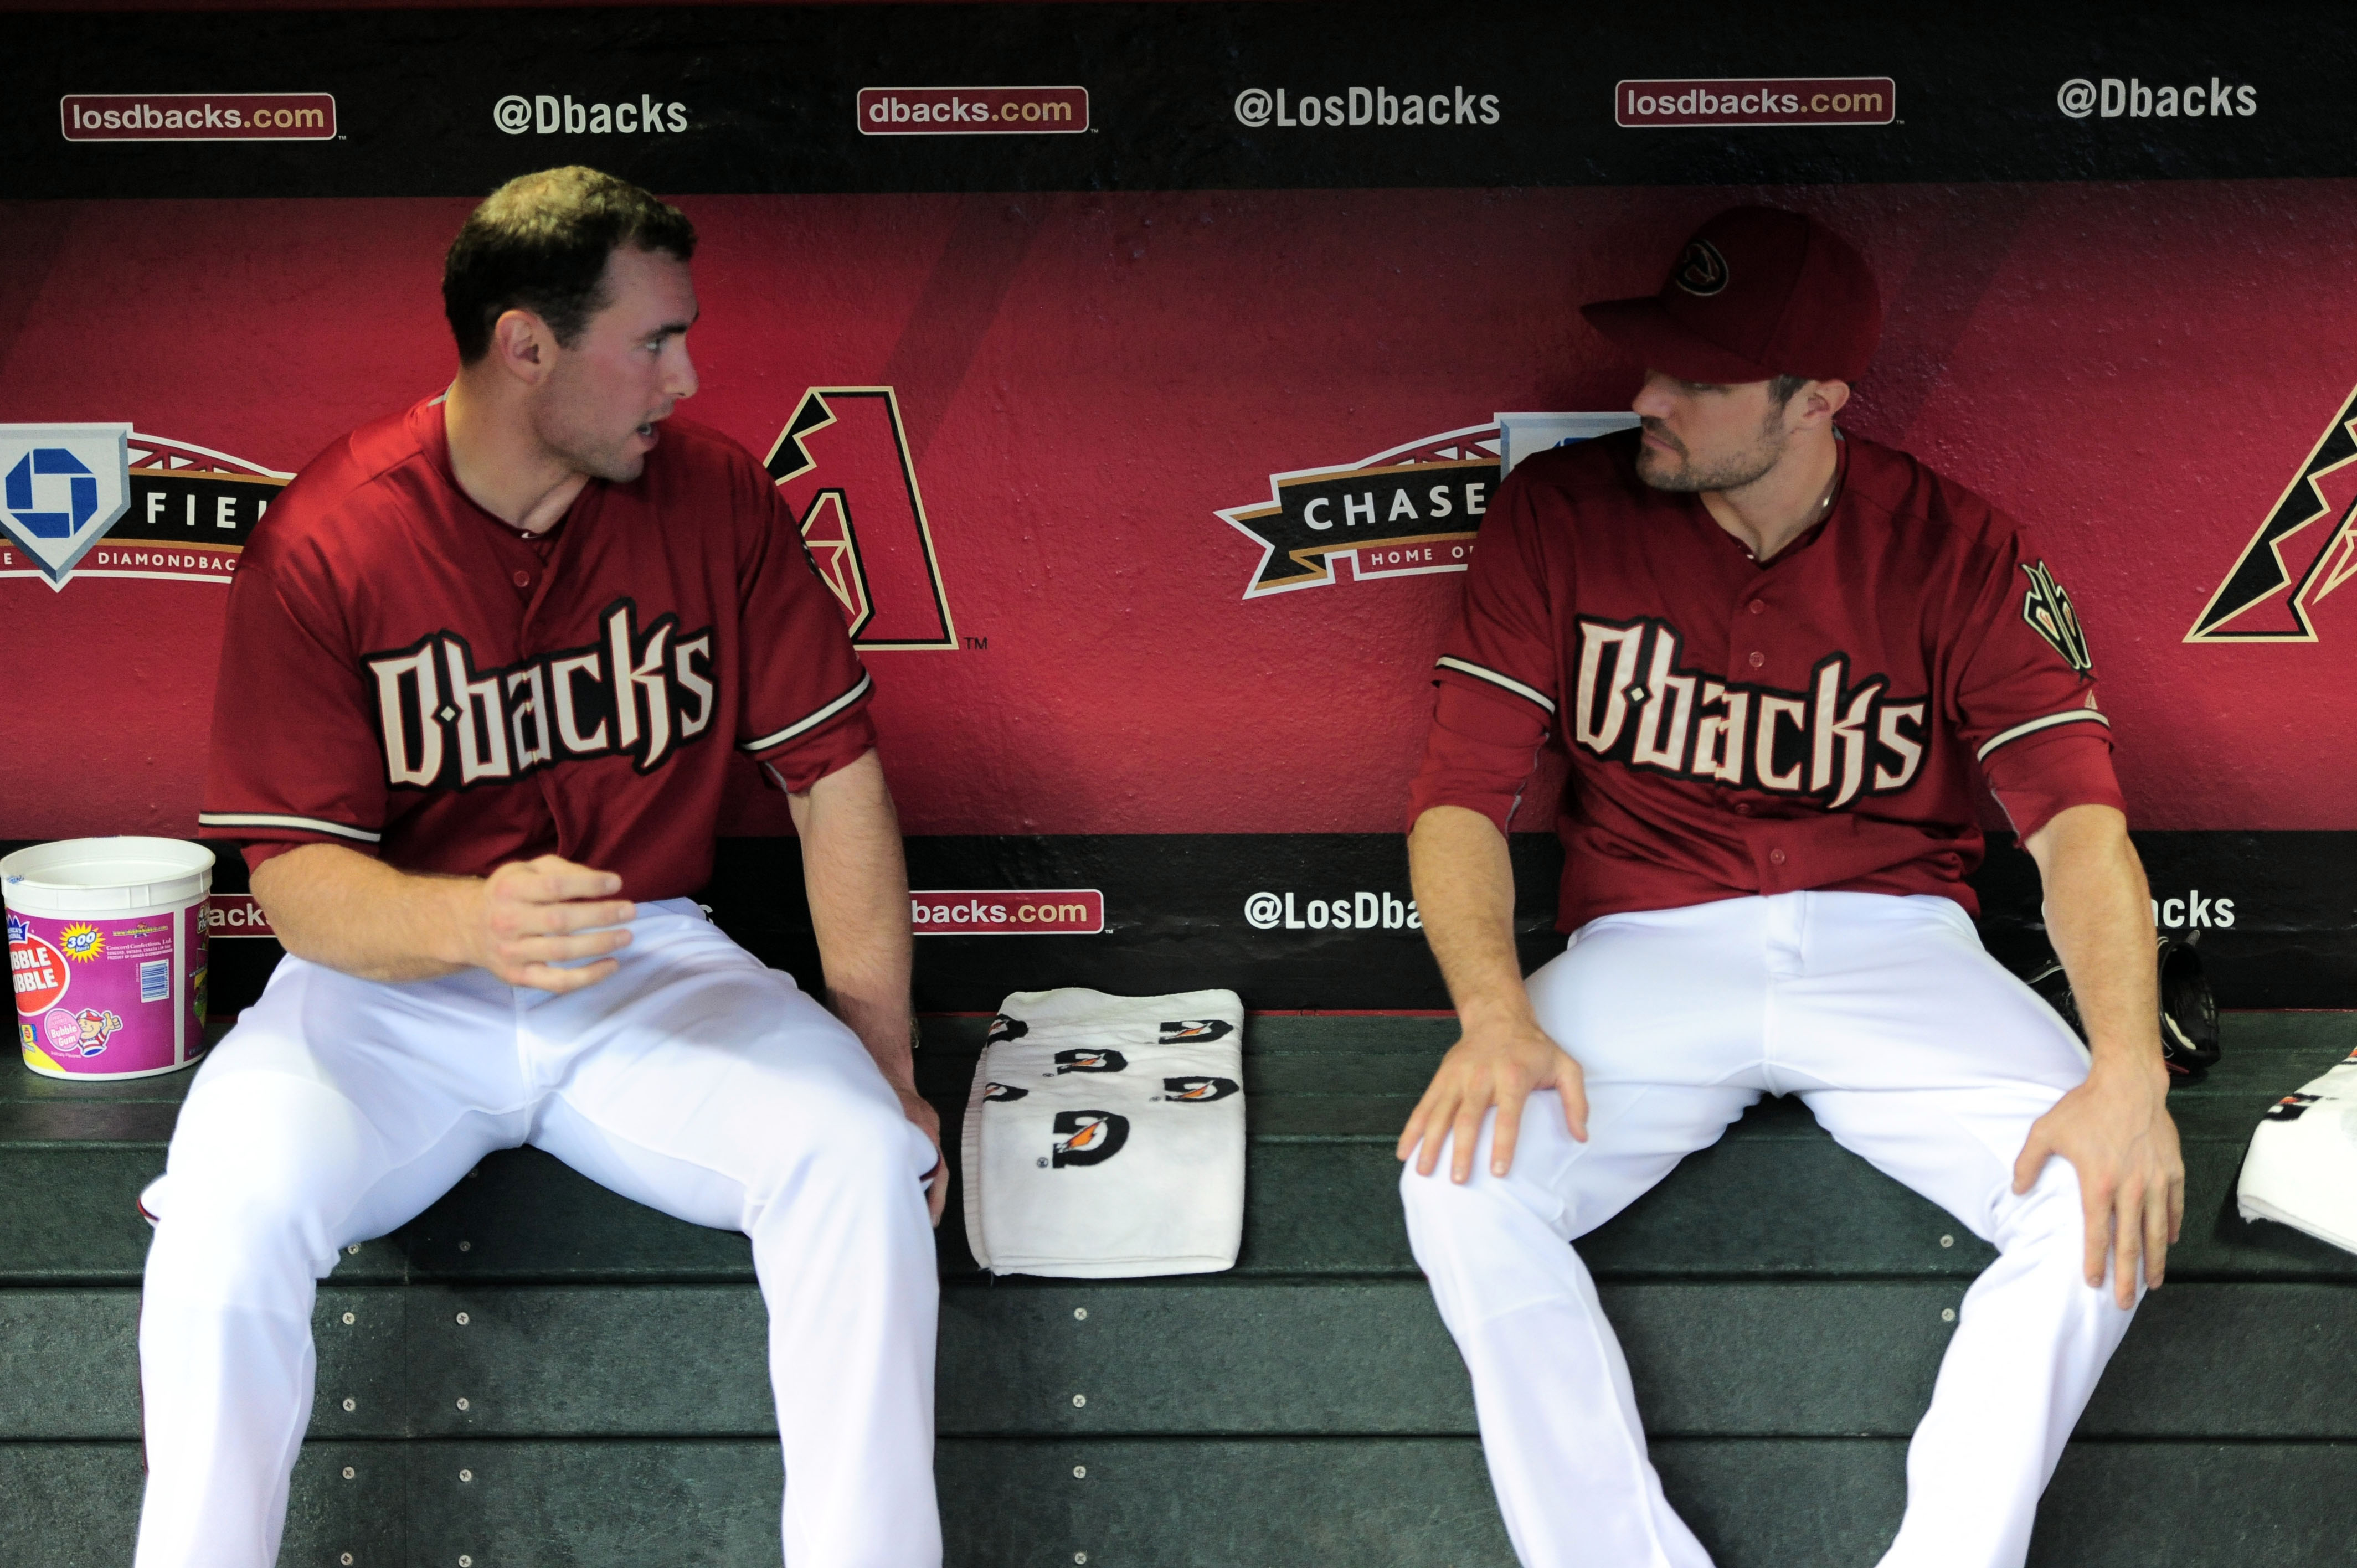 Paul Goldschmidt produced 7.4 fWAR in 2015, while A.J. Pollock produced 6.6 fWAR.